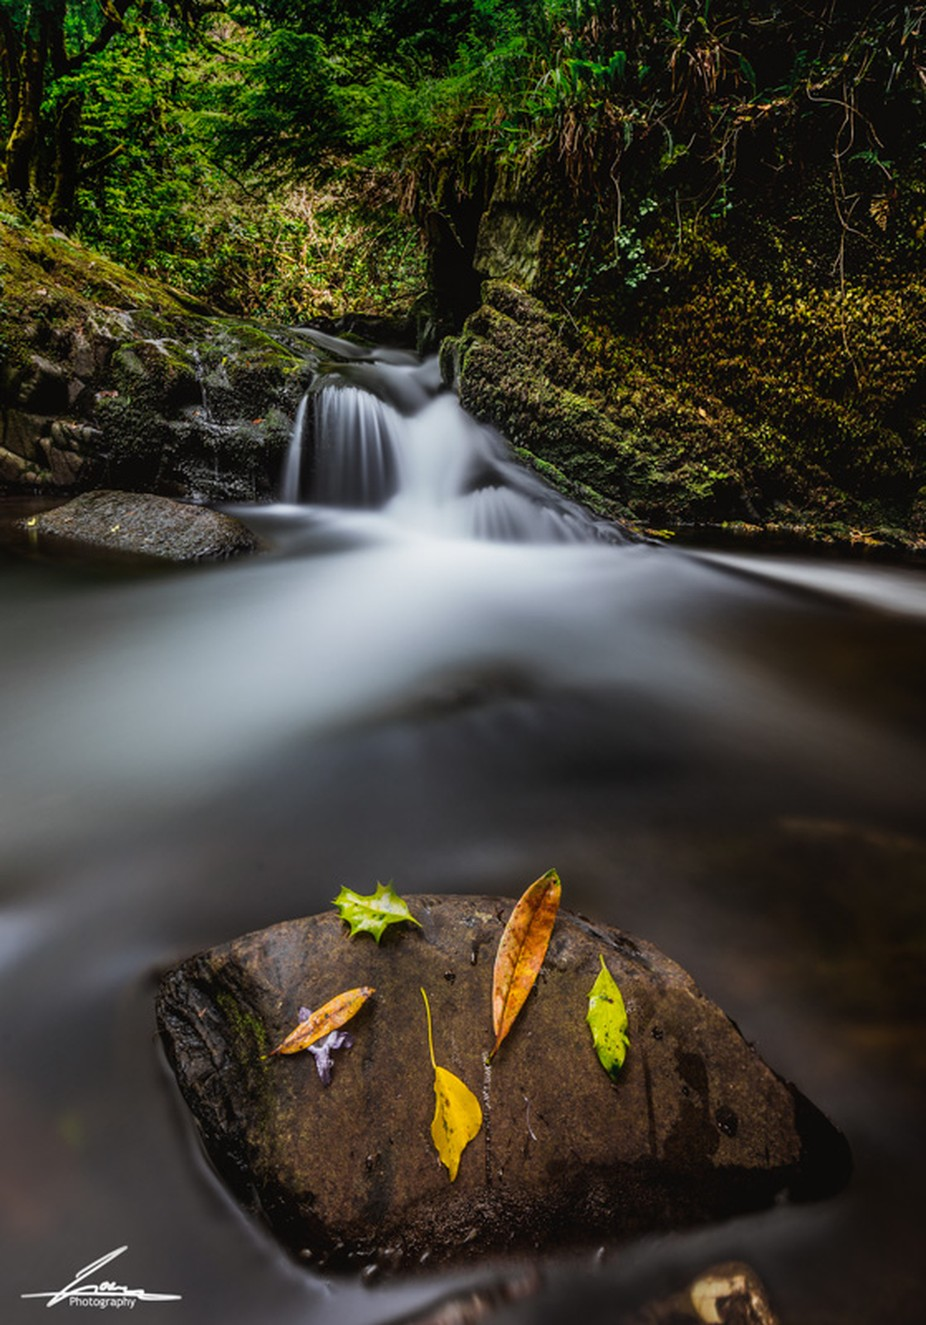 Killarney national park  by Goran_Loncar - The Natural Planet Photo Contest